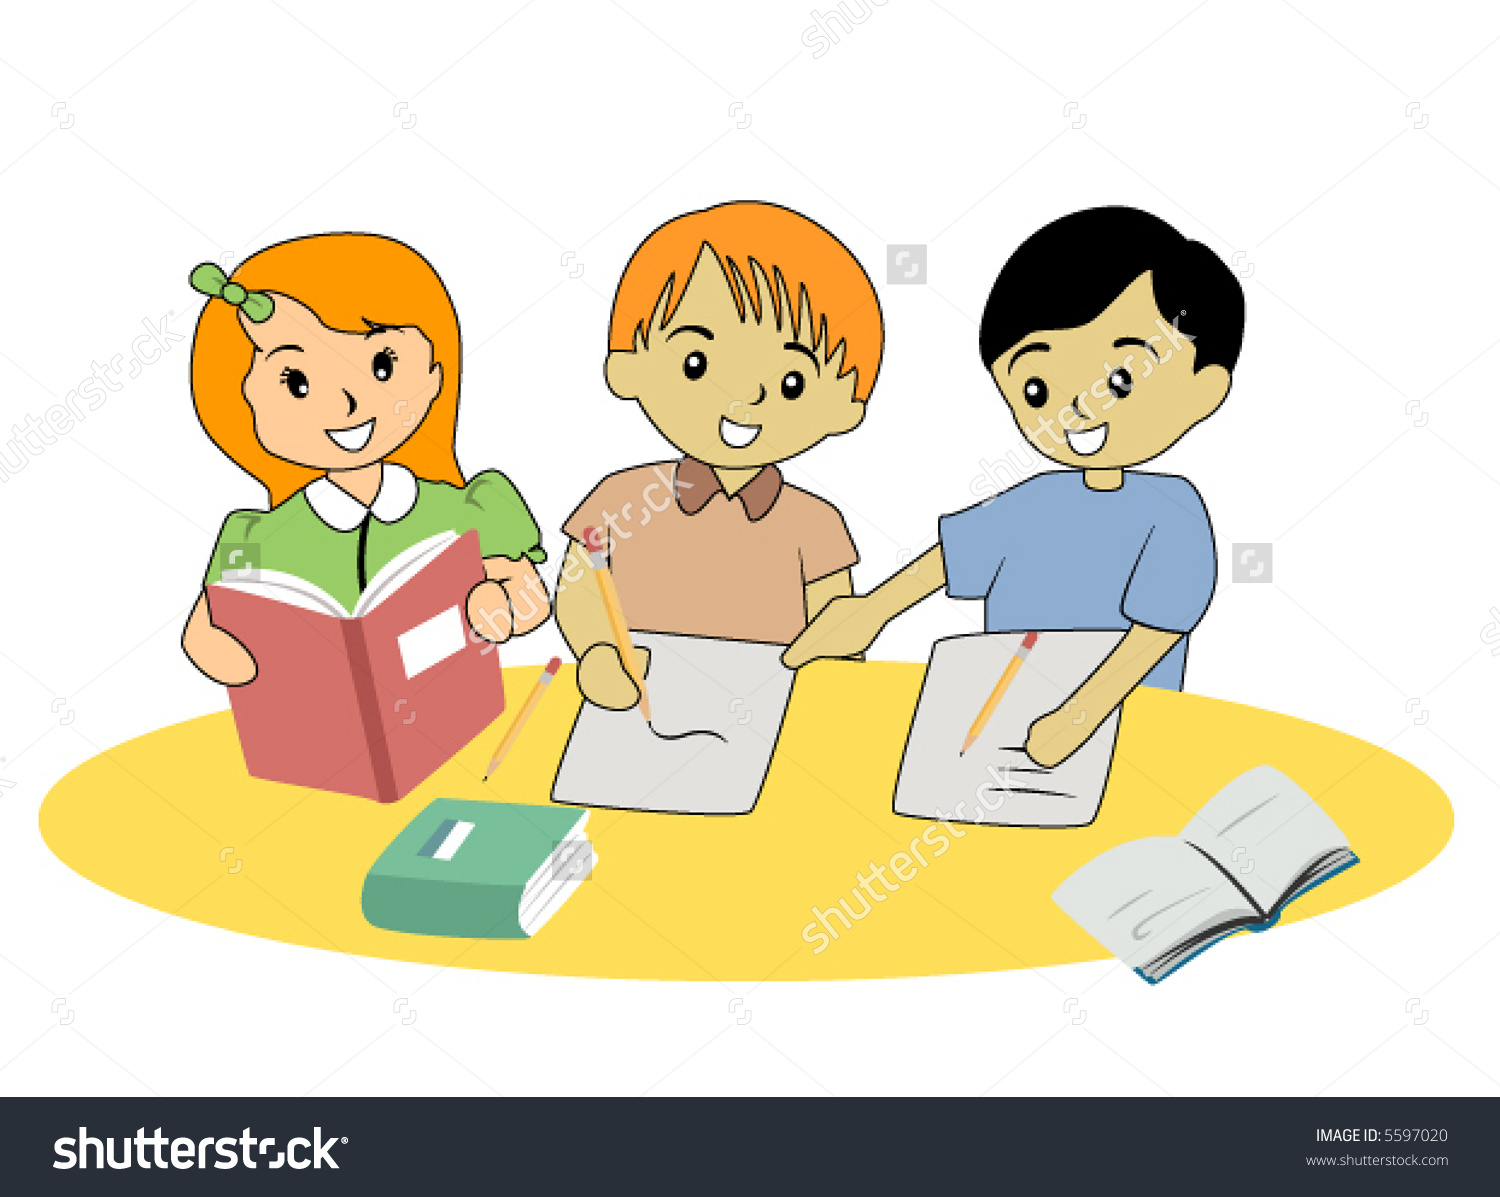 Study group clipart 7 clipart station study group clipart 7 sciox Gallery